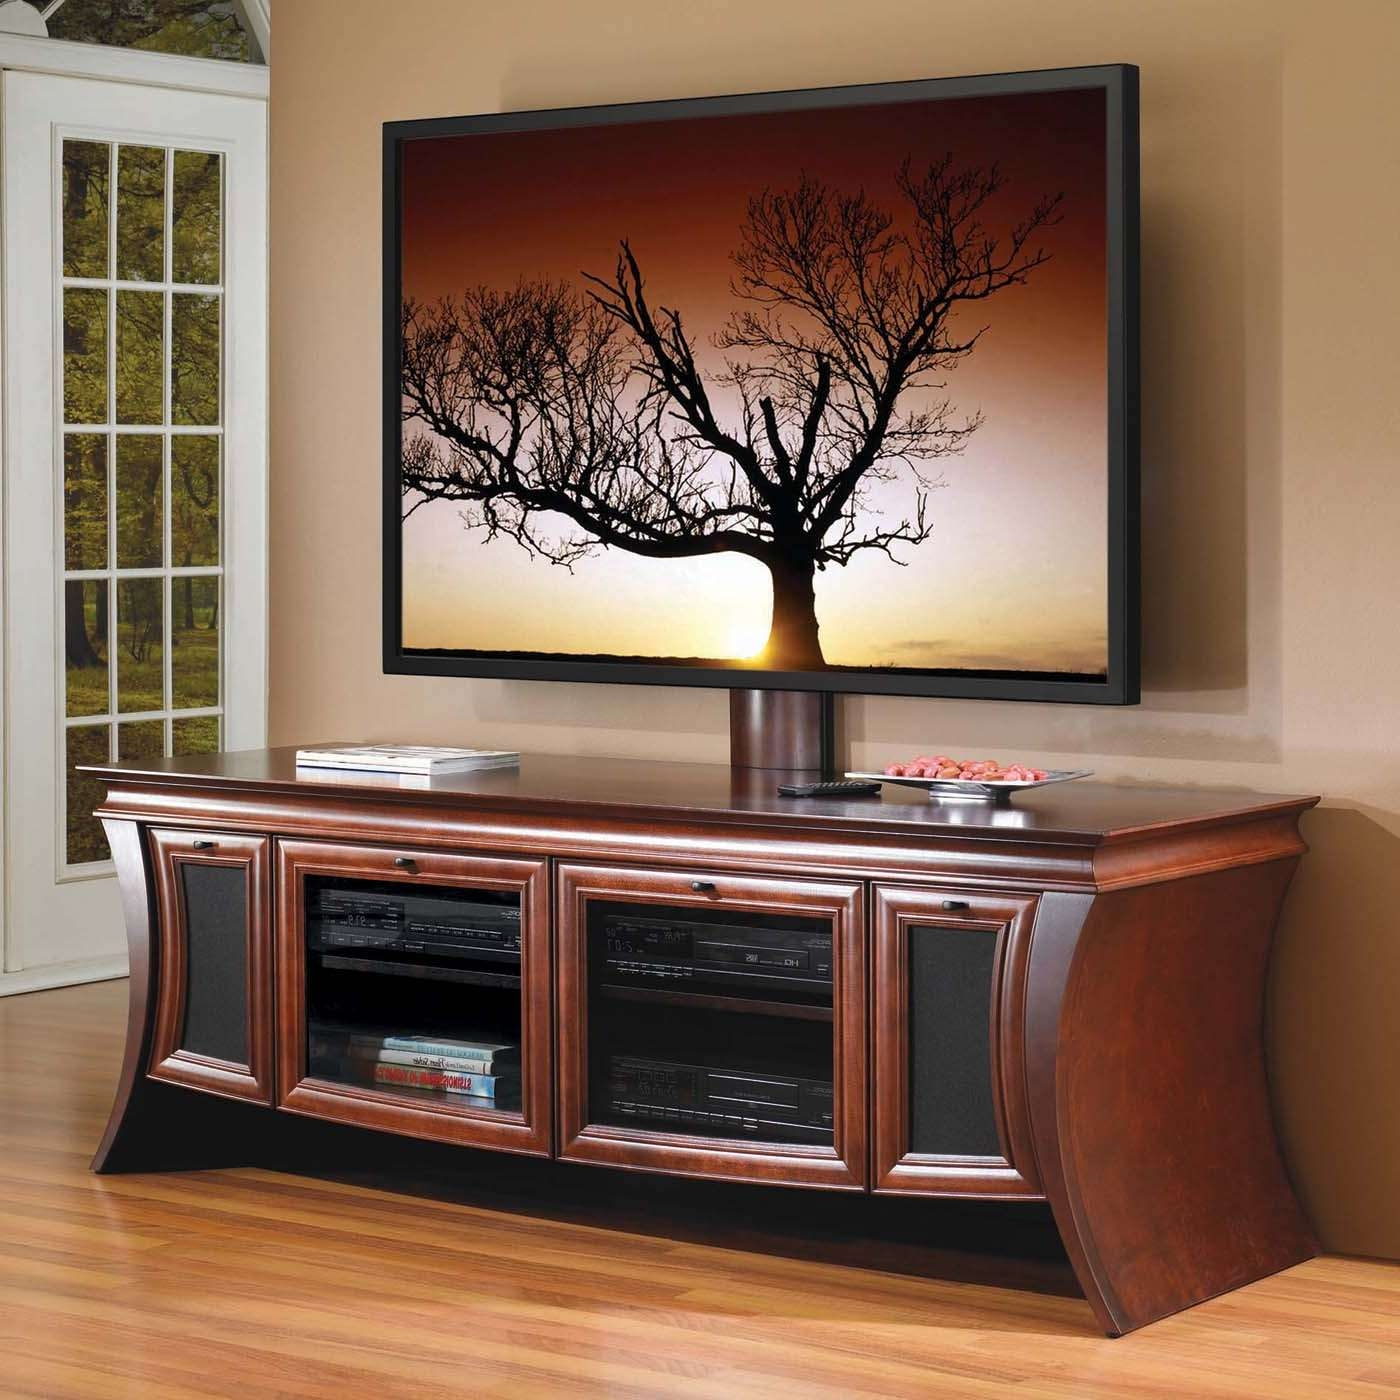 Furnitures Media Stands For Flat Screen Tvs Furniture The Best Within Wooden Tv Cabinets With Glass Doors (View 12 of 20)